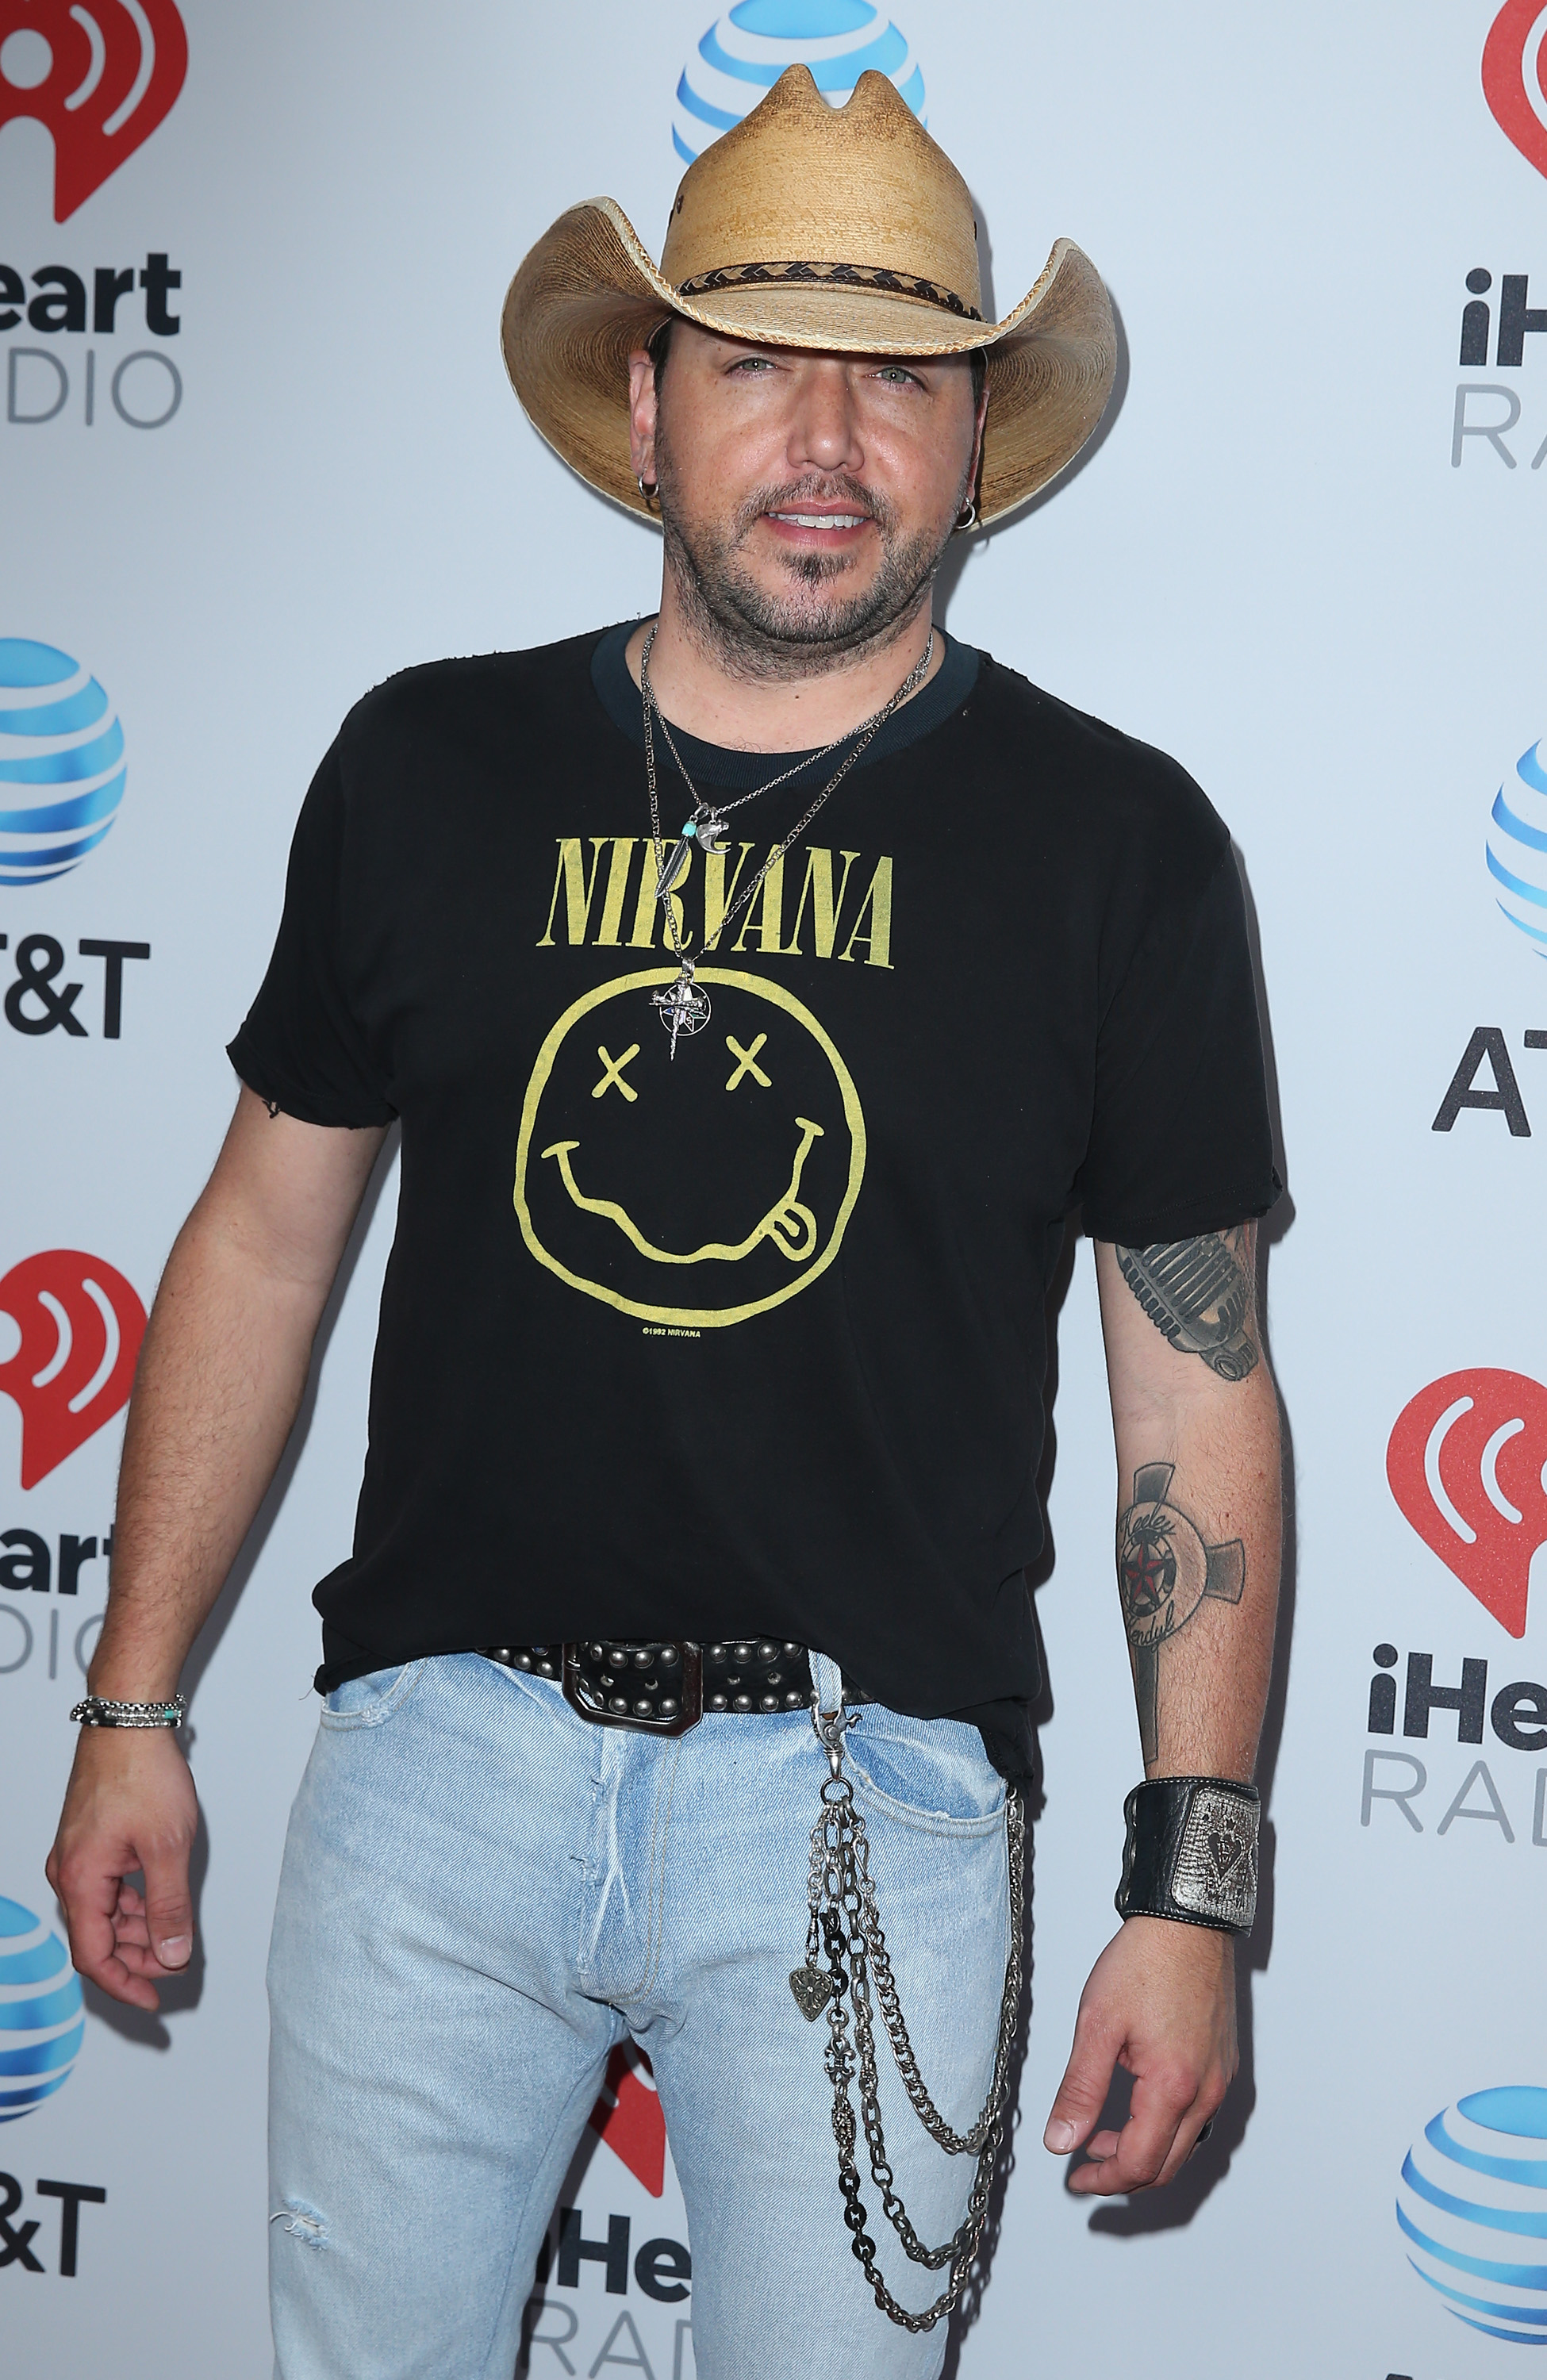 2017 iHeart Country Festival at Frank Erwin Center in Austin - Arrivals                                    Featuring: Jason Aldean                  Where: Austin, Texas, United States                  When: 06 May 2017                  Credit: Judy Eddy/WENN.com